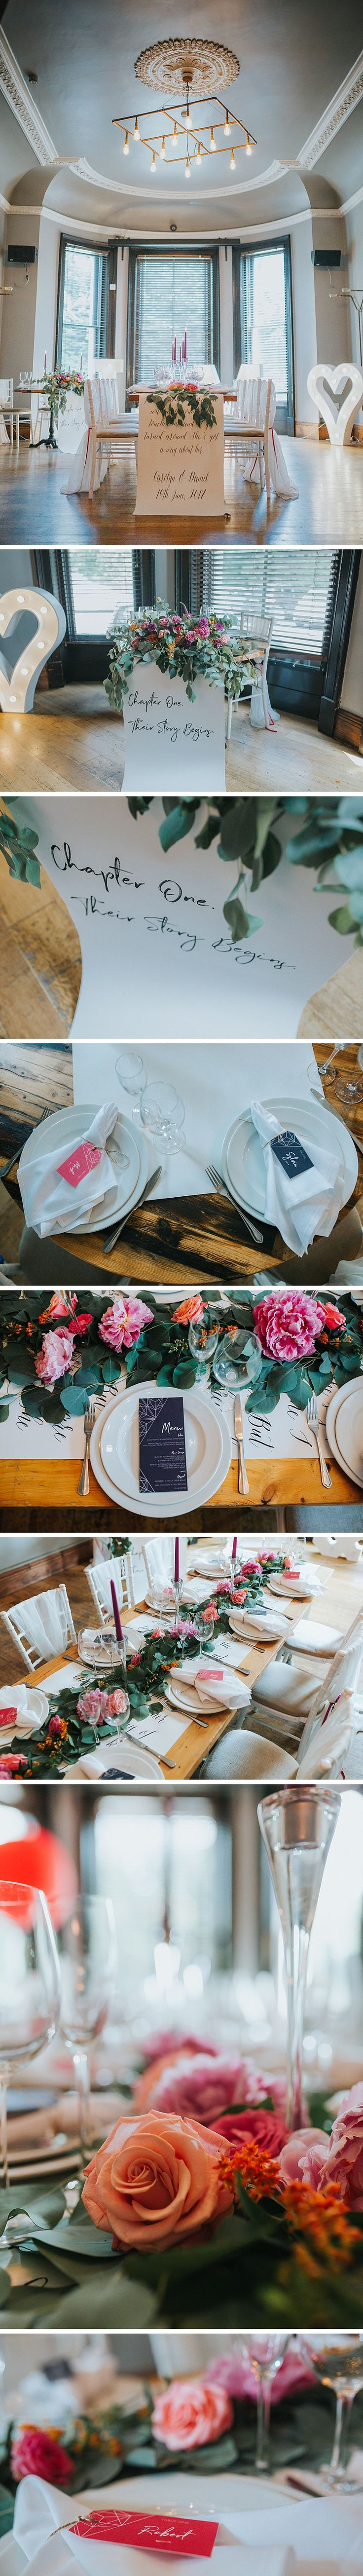 details of a wedding set up in a victorian room at the faversham wedding venue in leeds